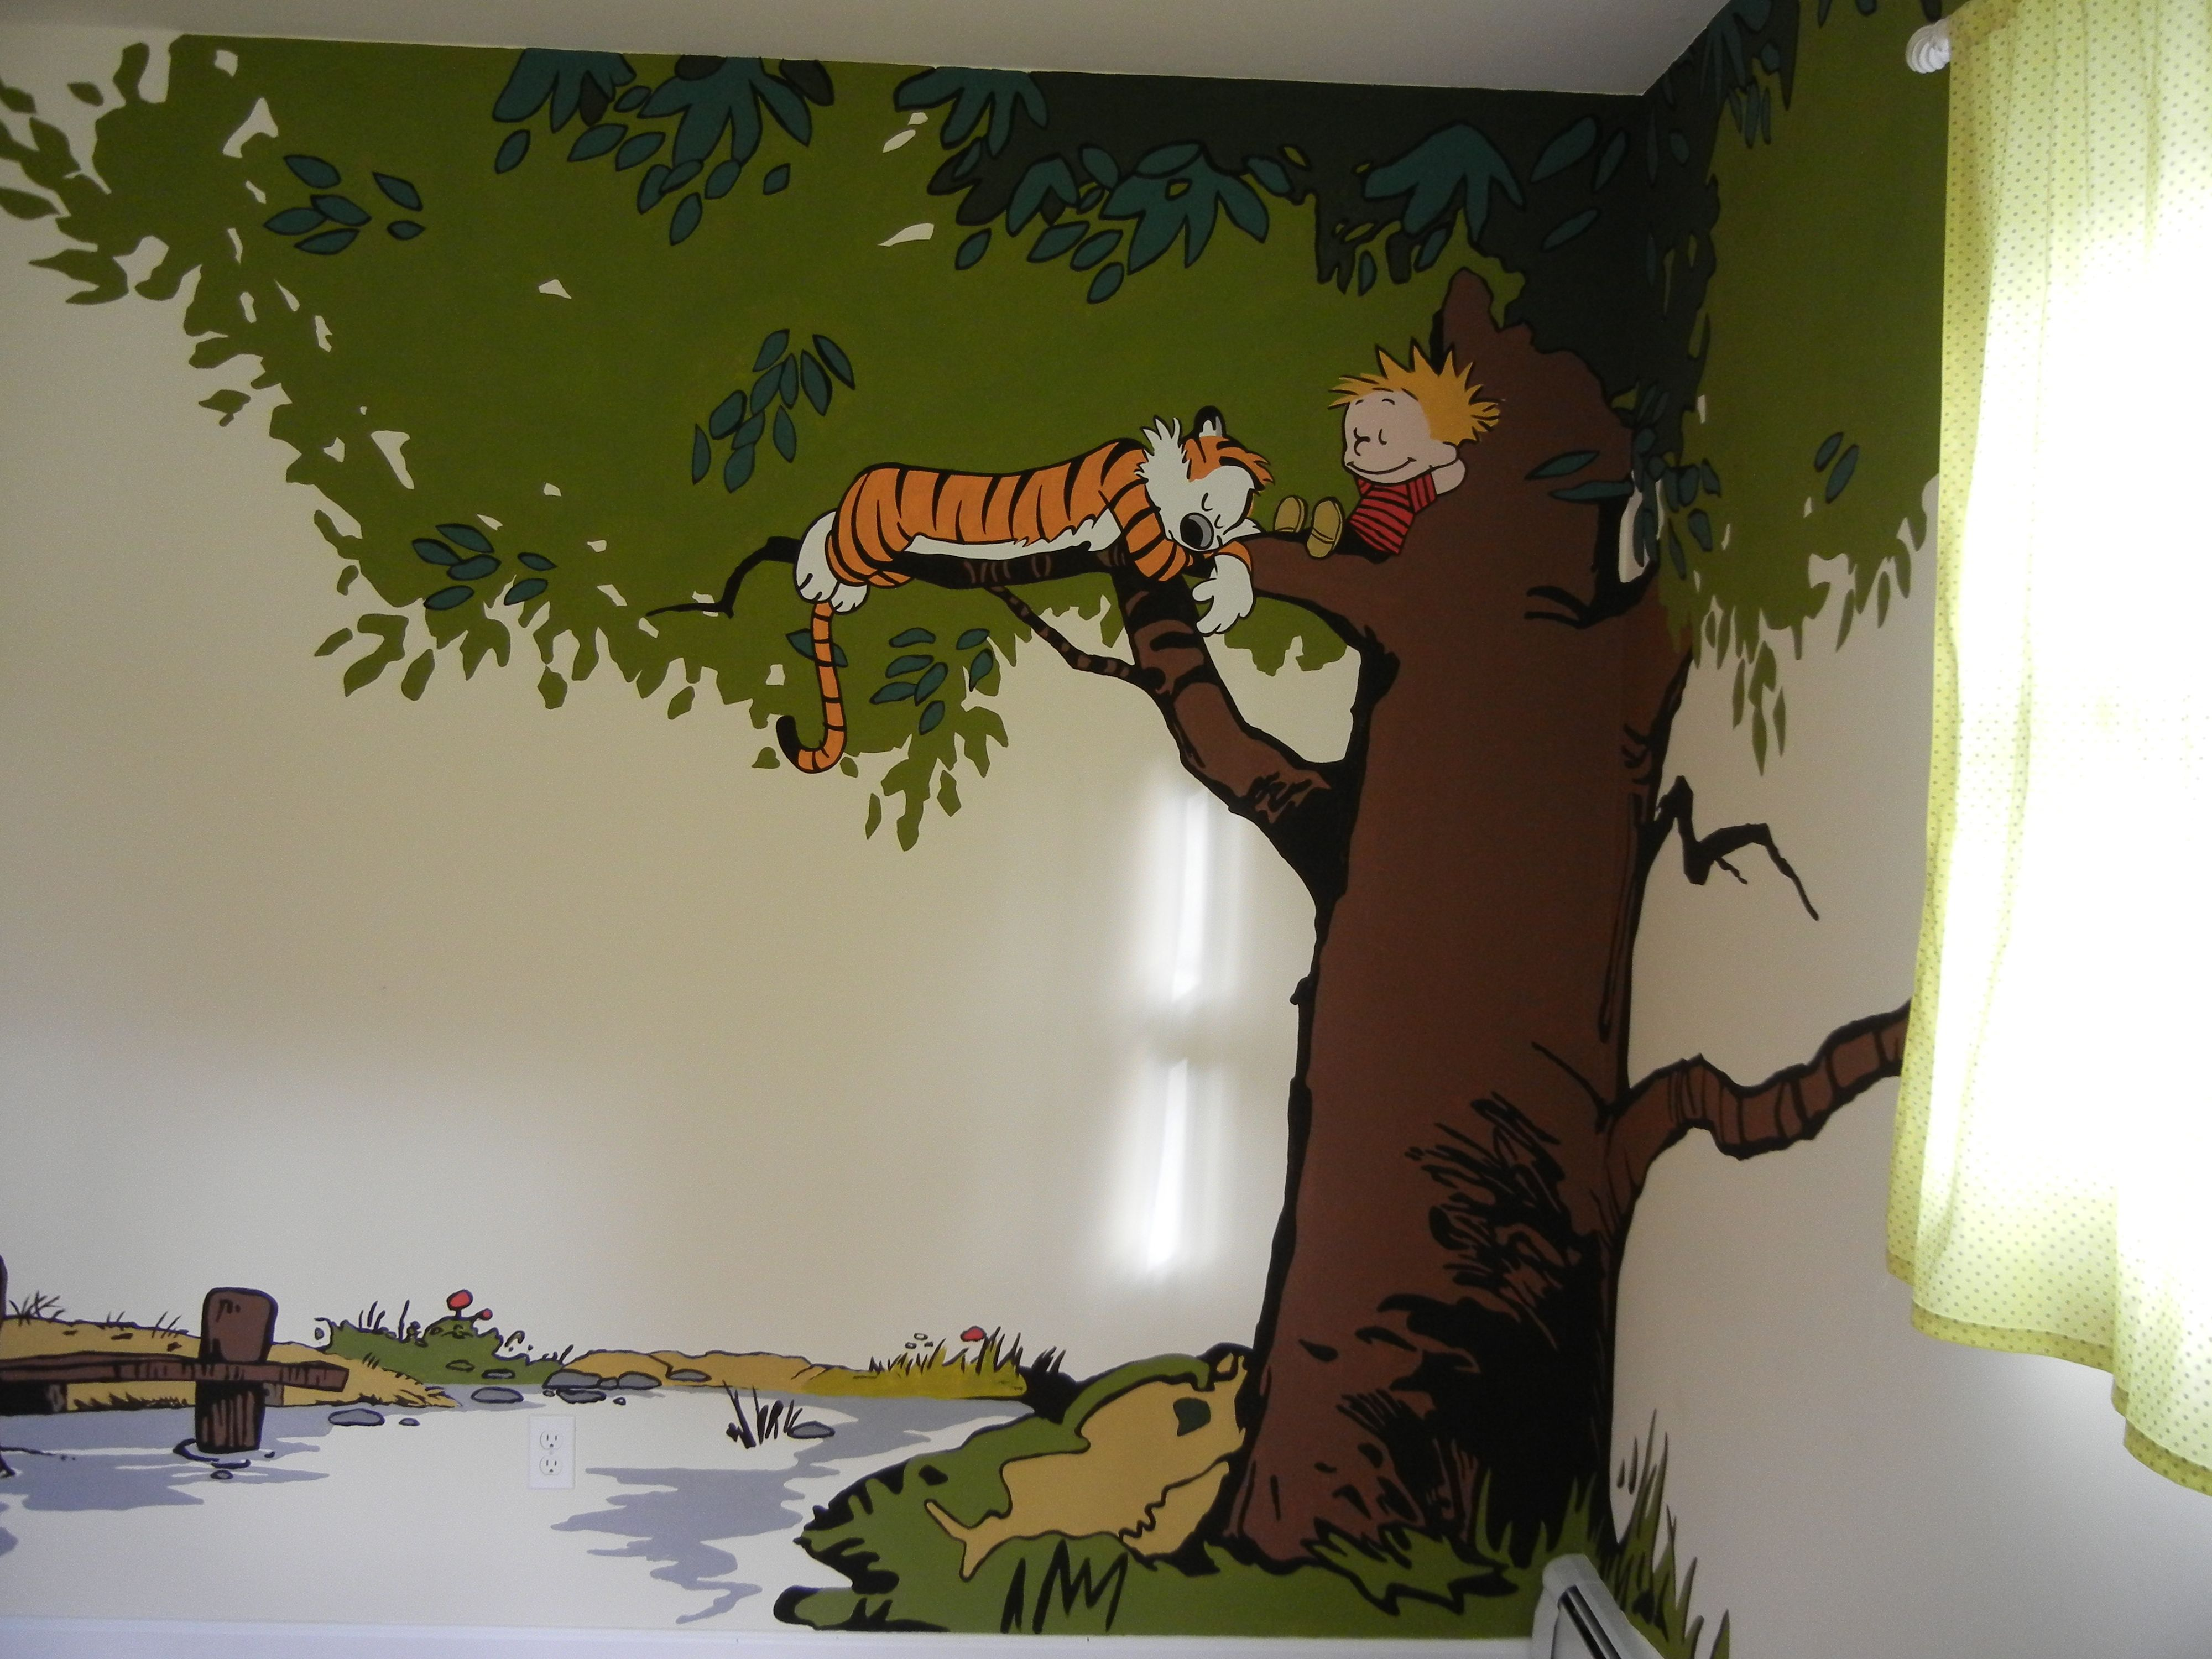 calvin and hobbes mural in nursery murals amp decor sanity with five kids calvin and hobbes mural